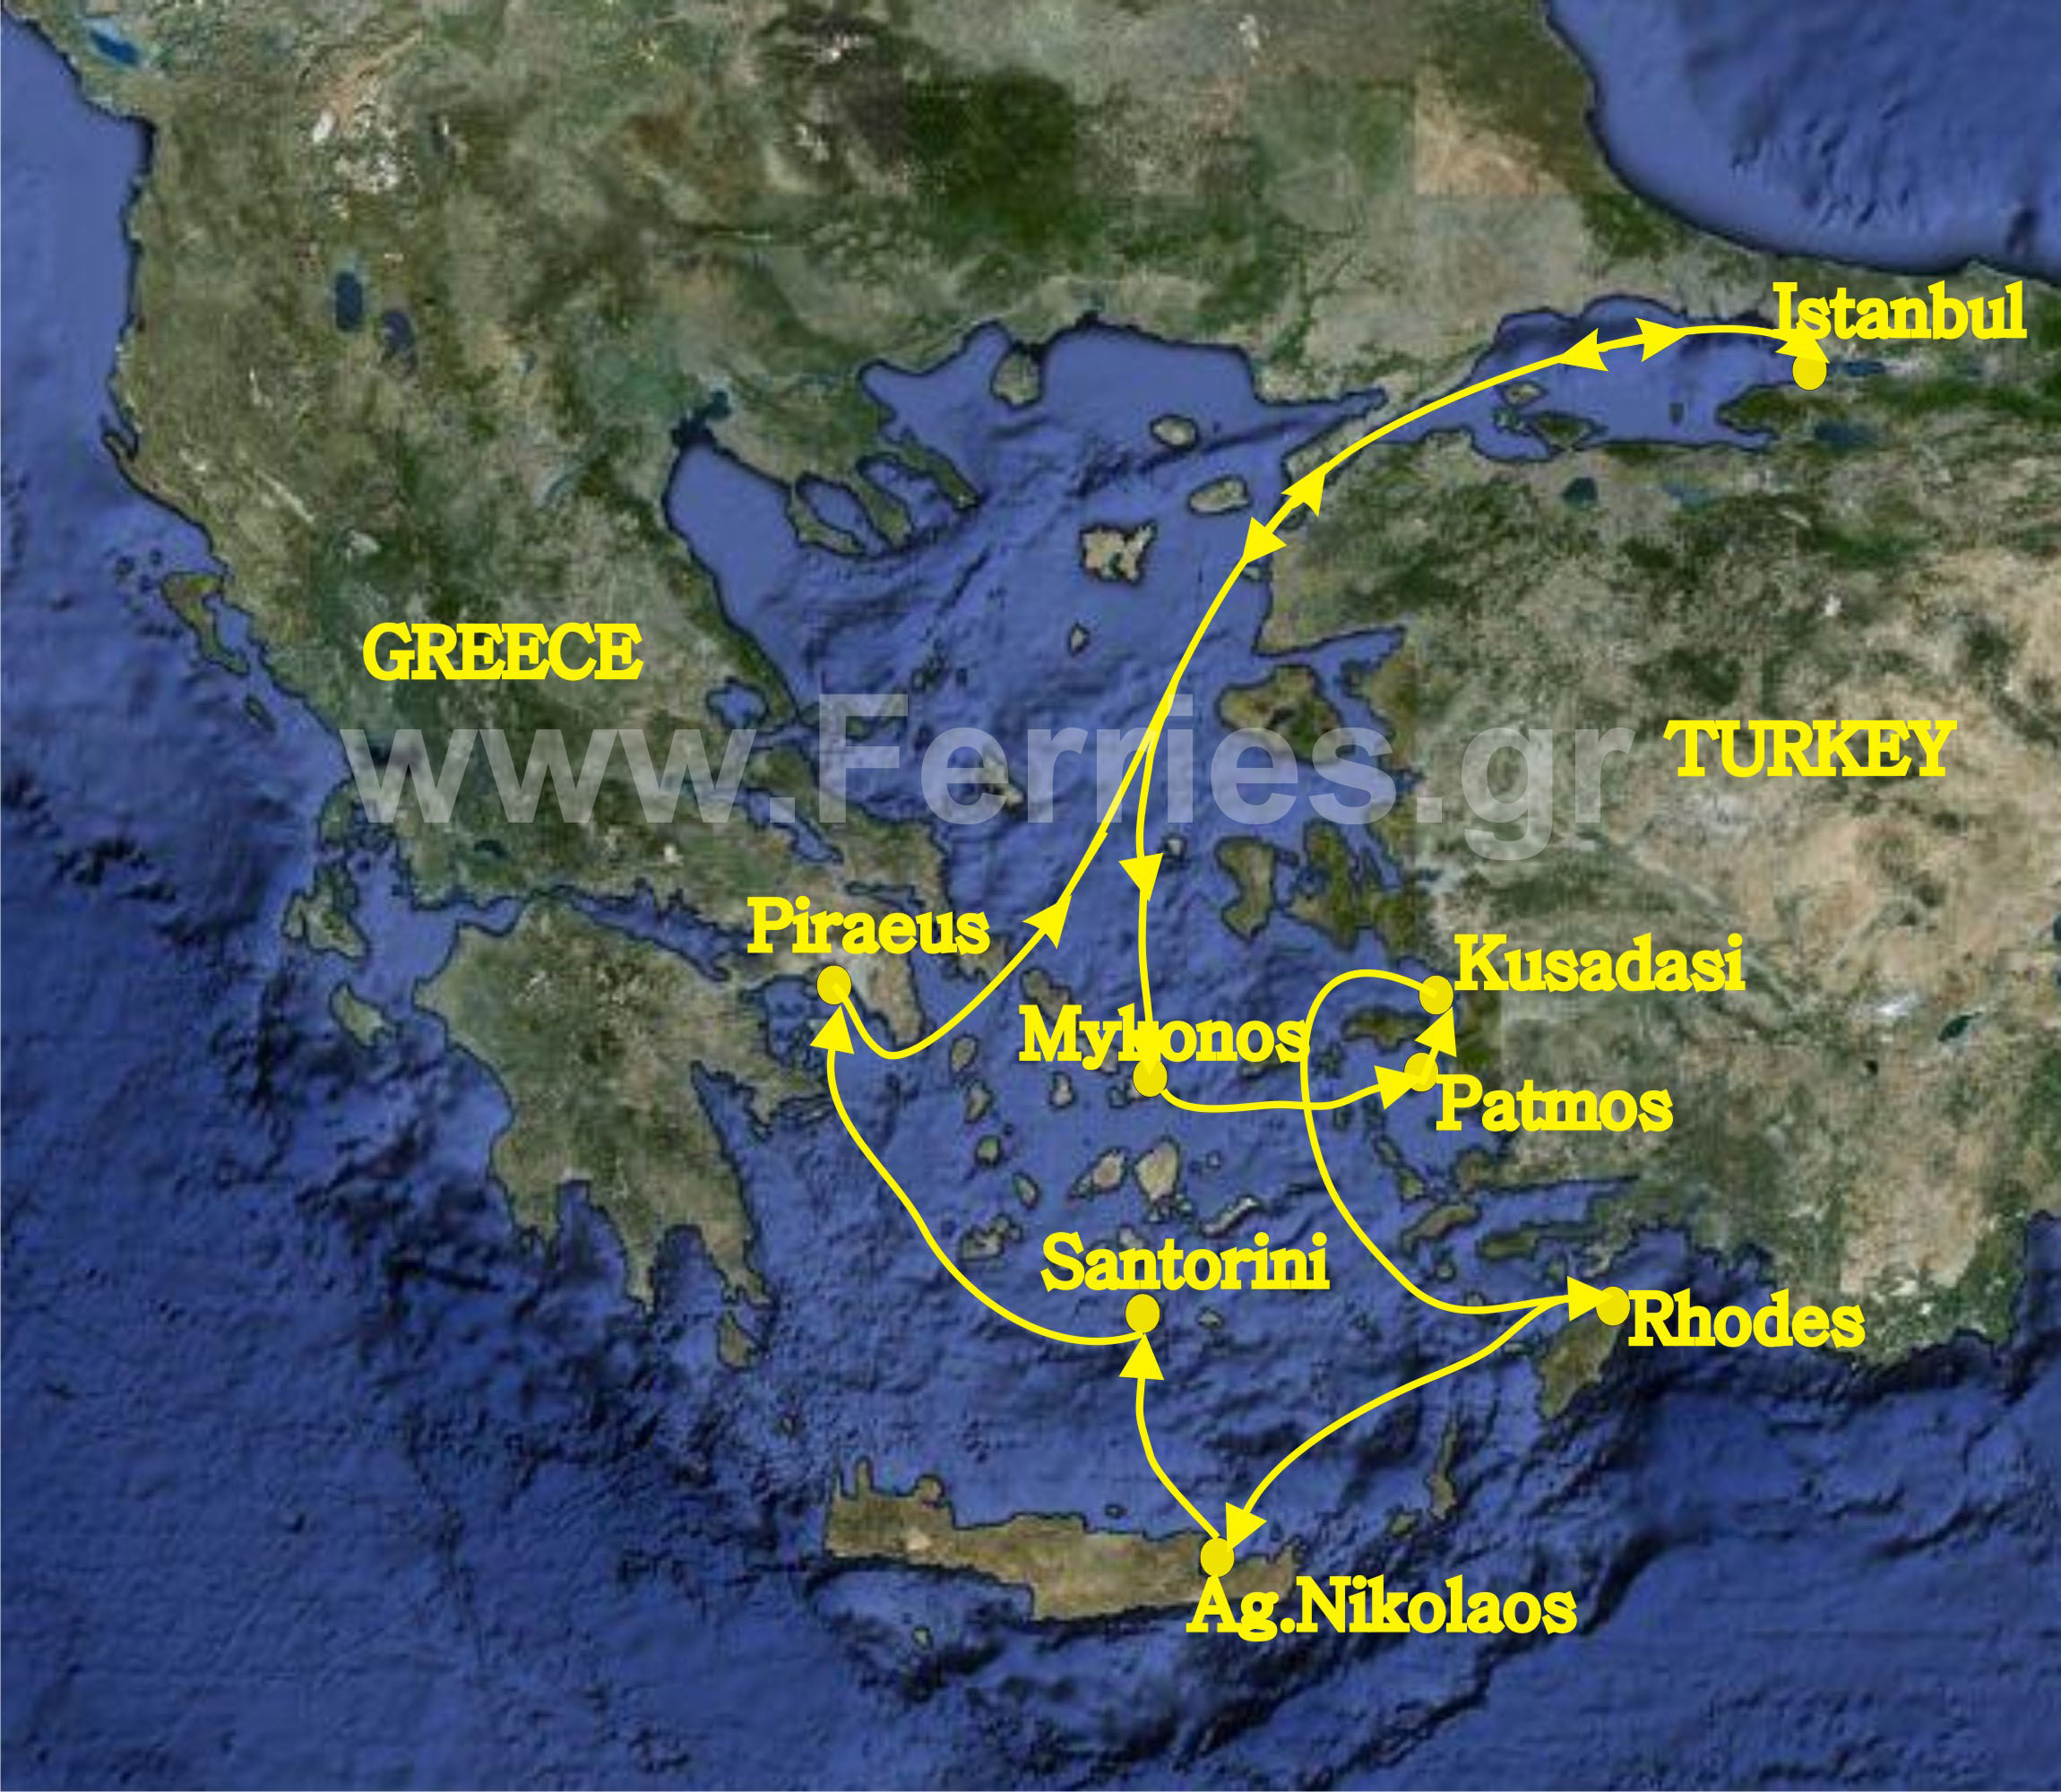 7 Day Cruise To Aegean Islands And Turkey Departure From